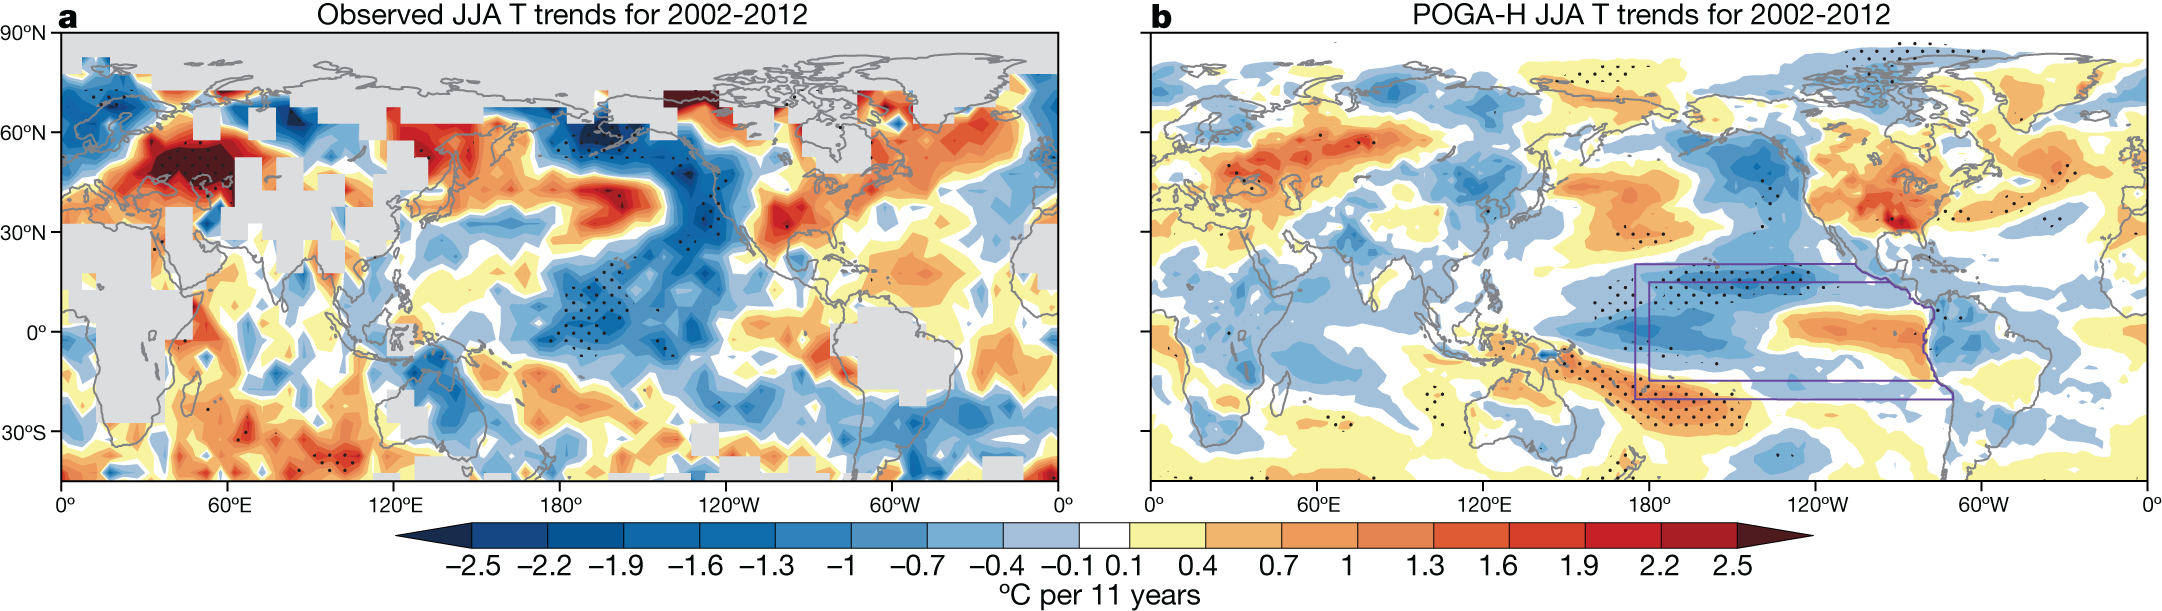 Simulated temperature trend patterns (right) created by climate modelers at Scripps Institution of Oceanography, UC San Diego, showed strong agreement to observed boreal summer temperatures (left) for 2002-2012. JJA stands for June July August. Image courtesy of Nature